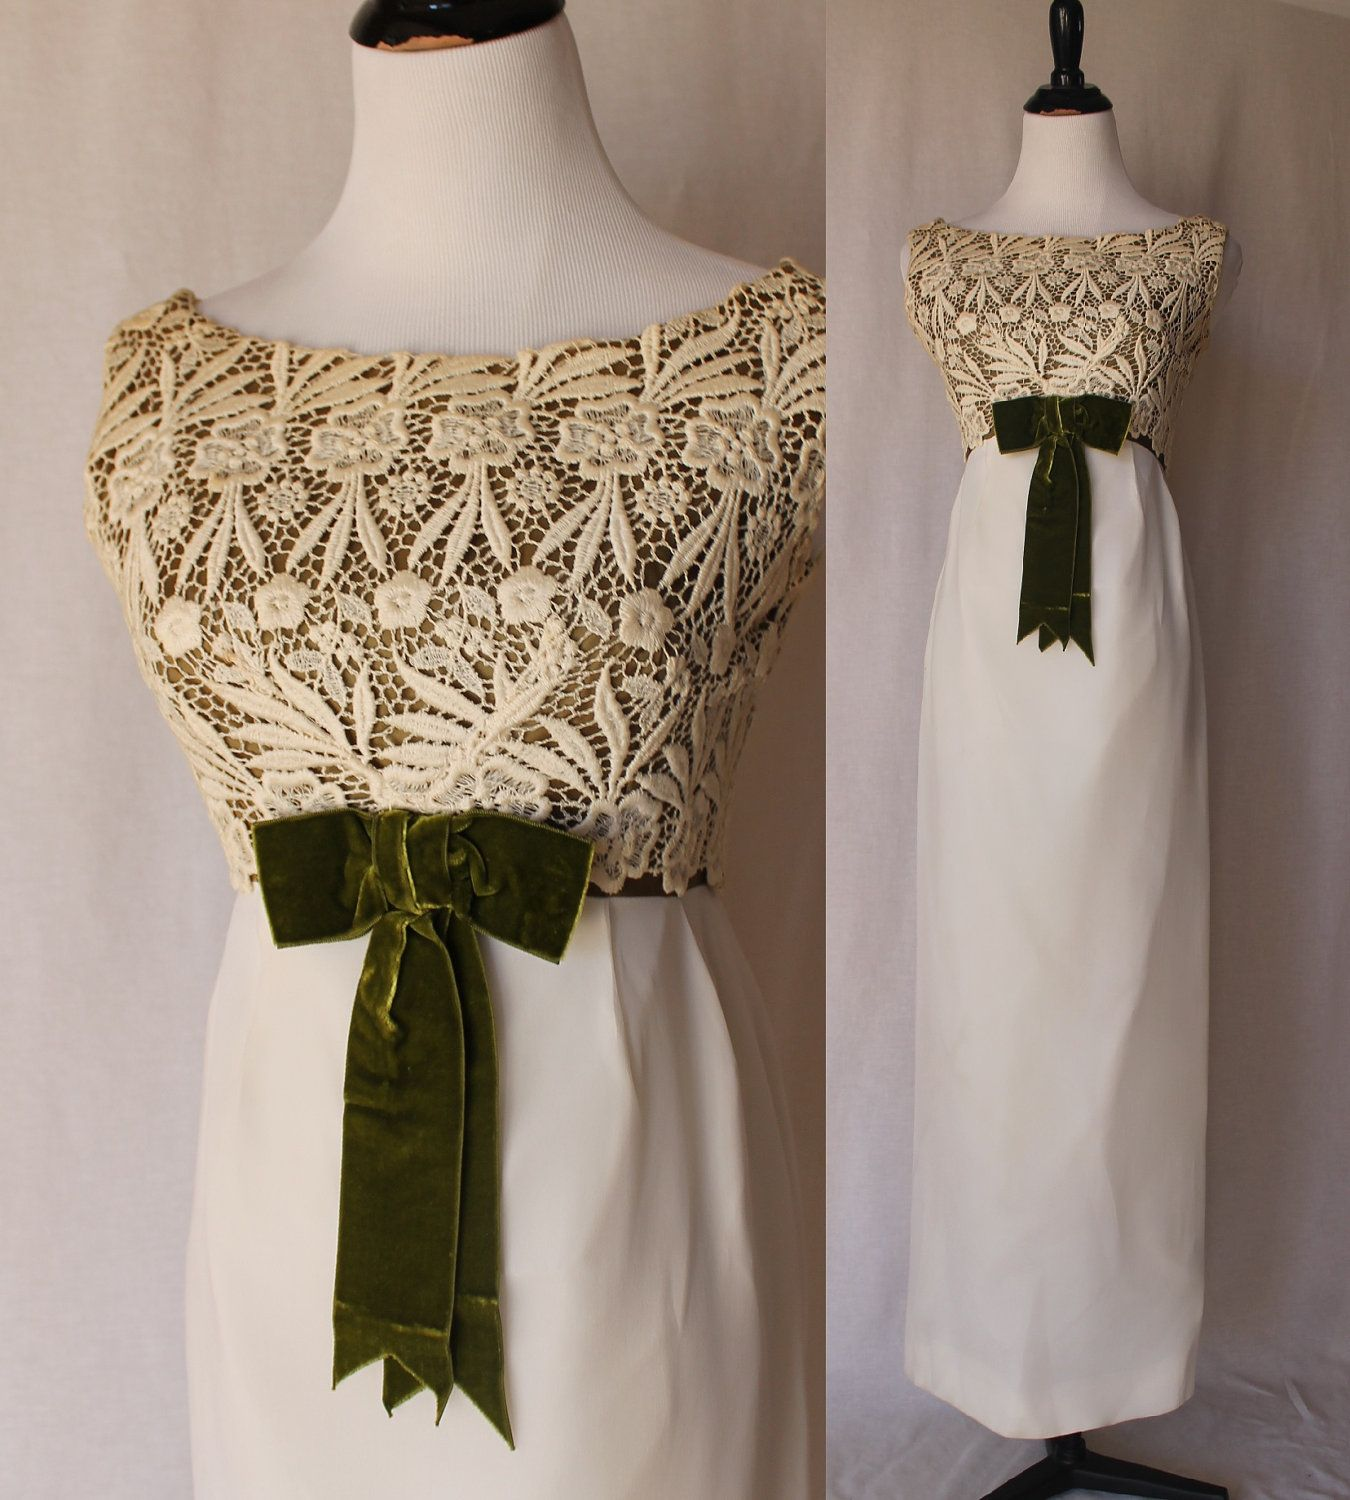 S ivory green formal vintage gown dress via etsy